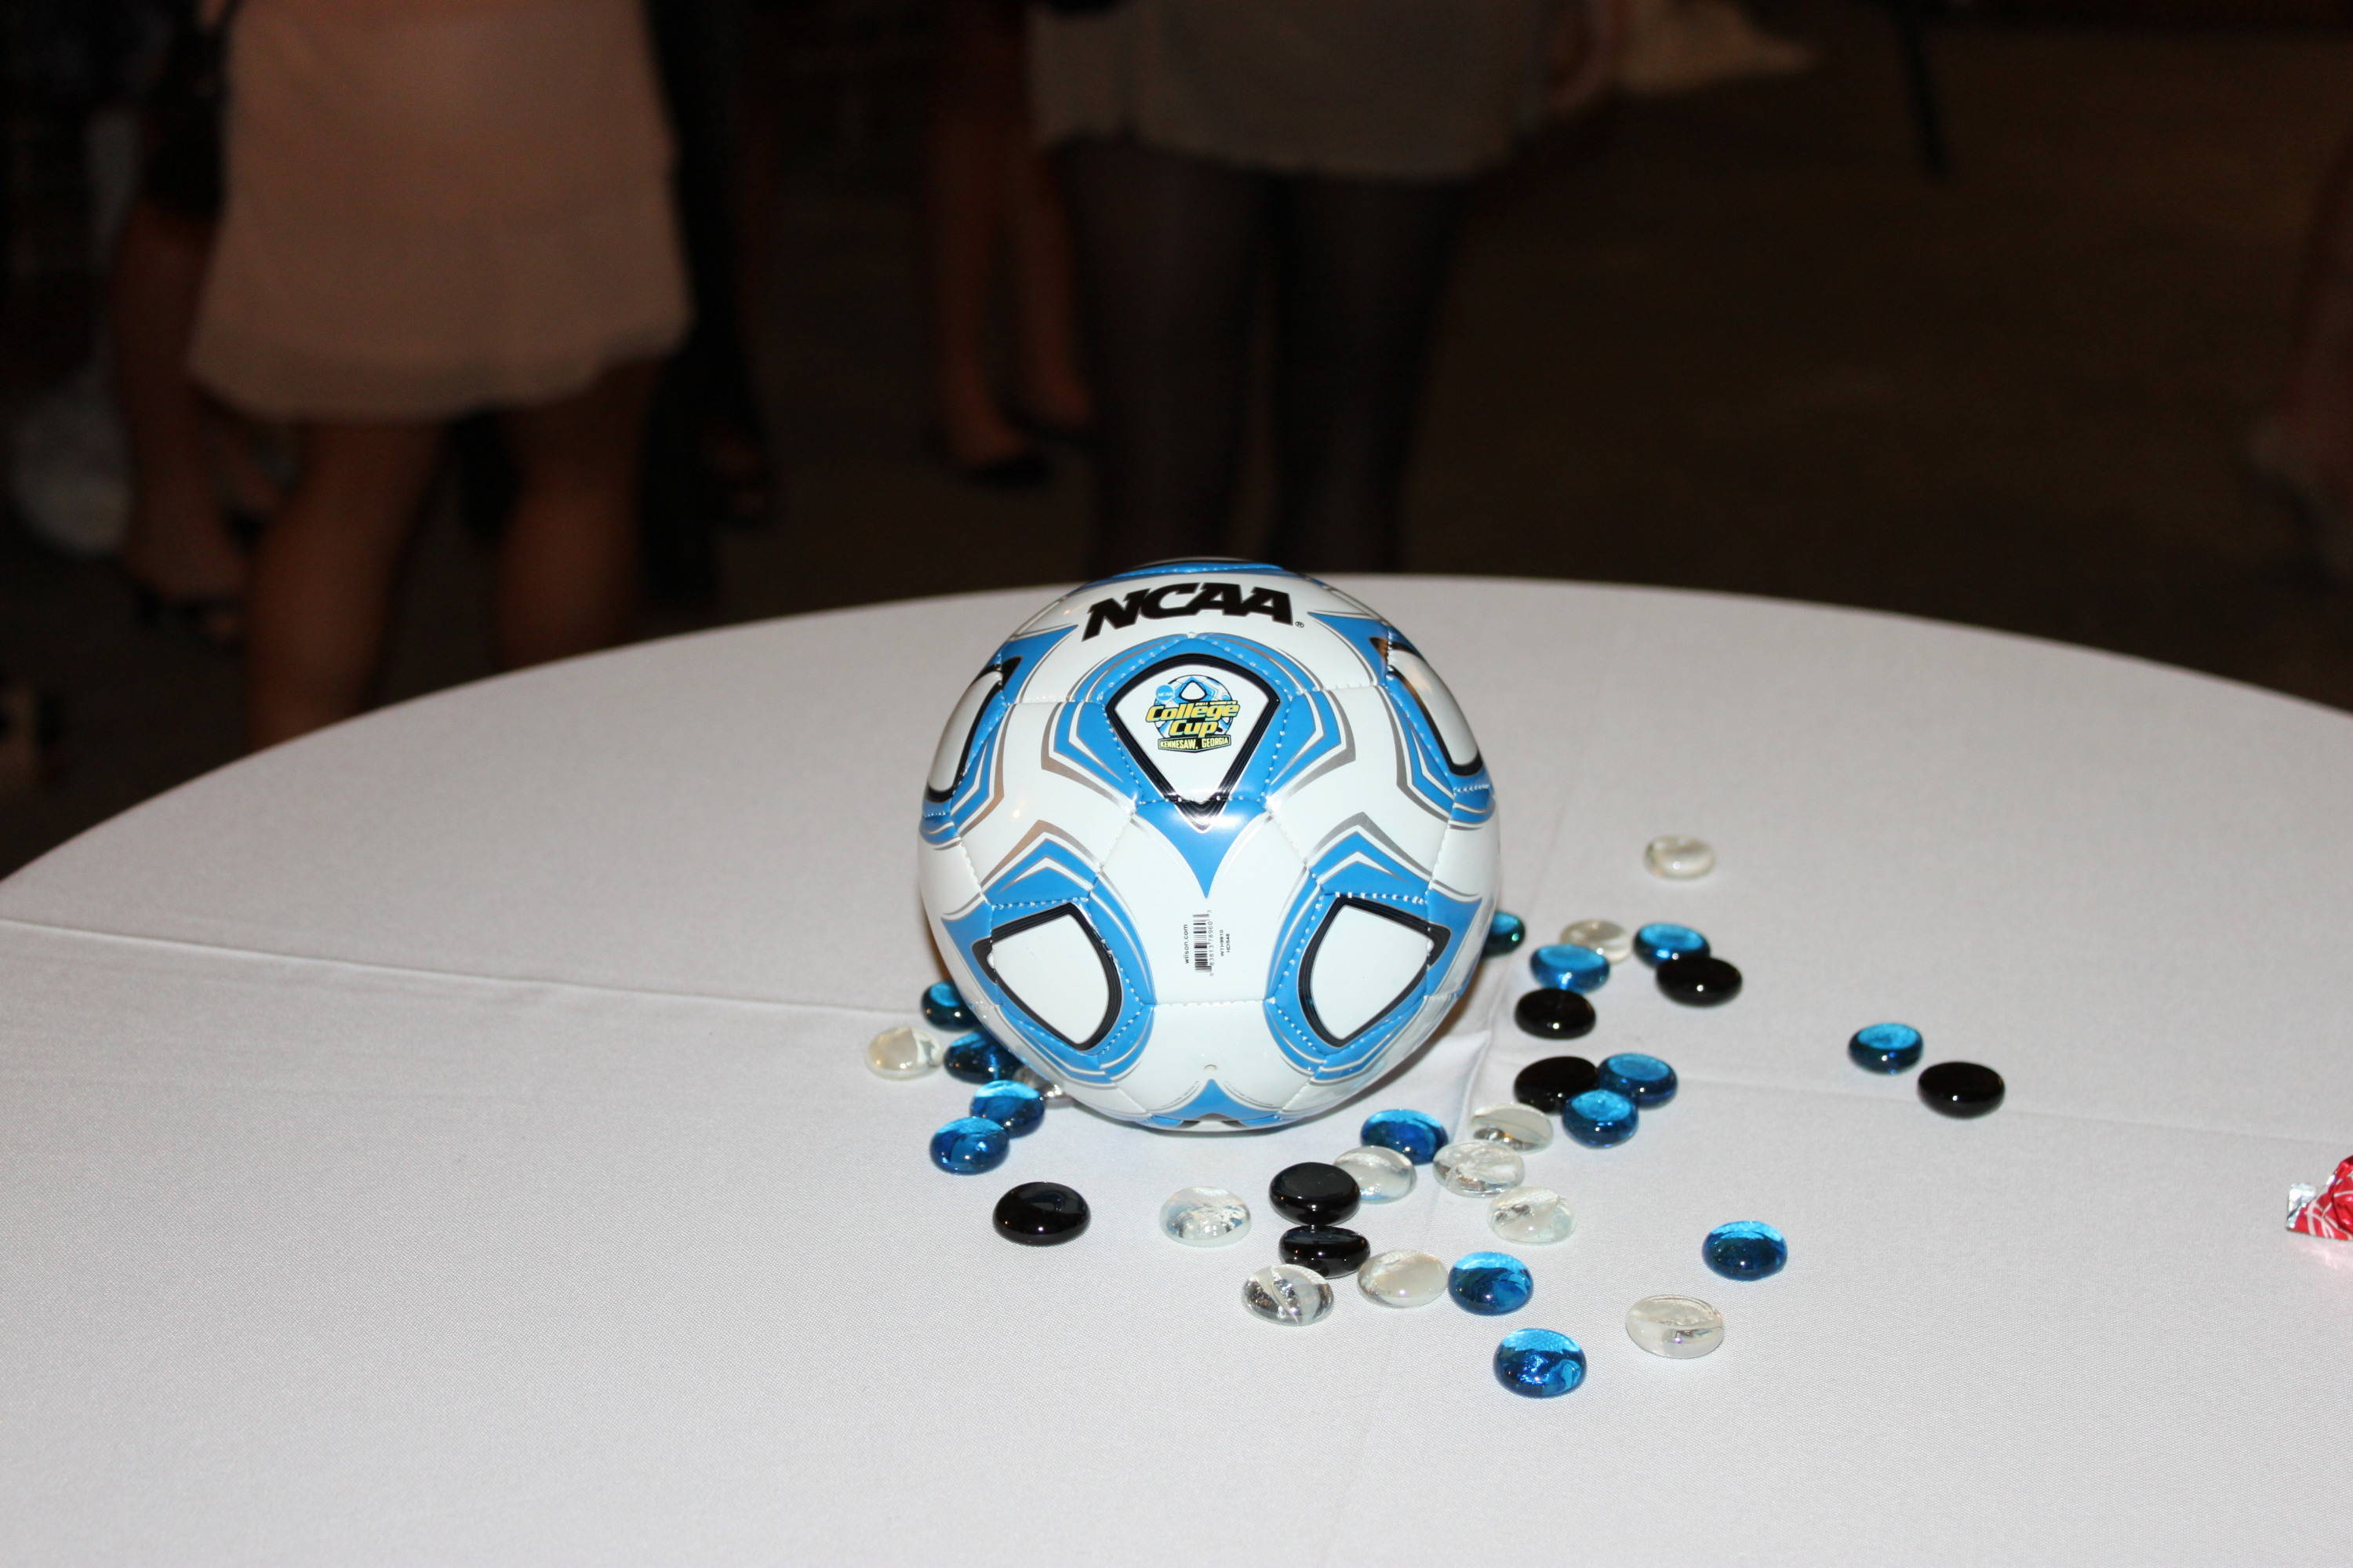 The 2011 College Cup Banquet